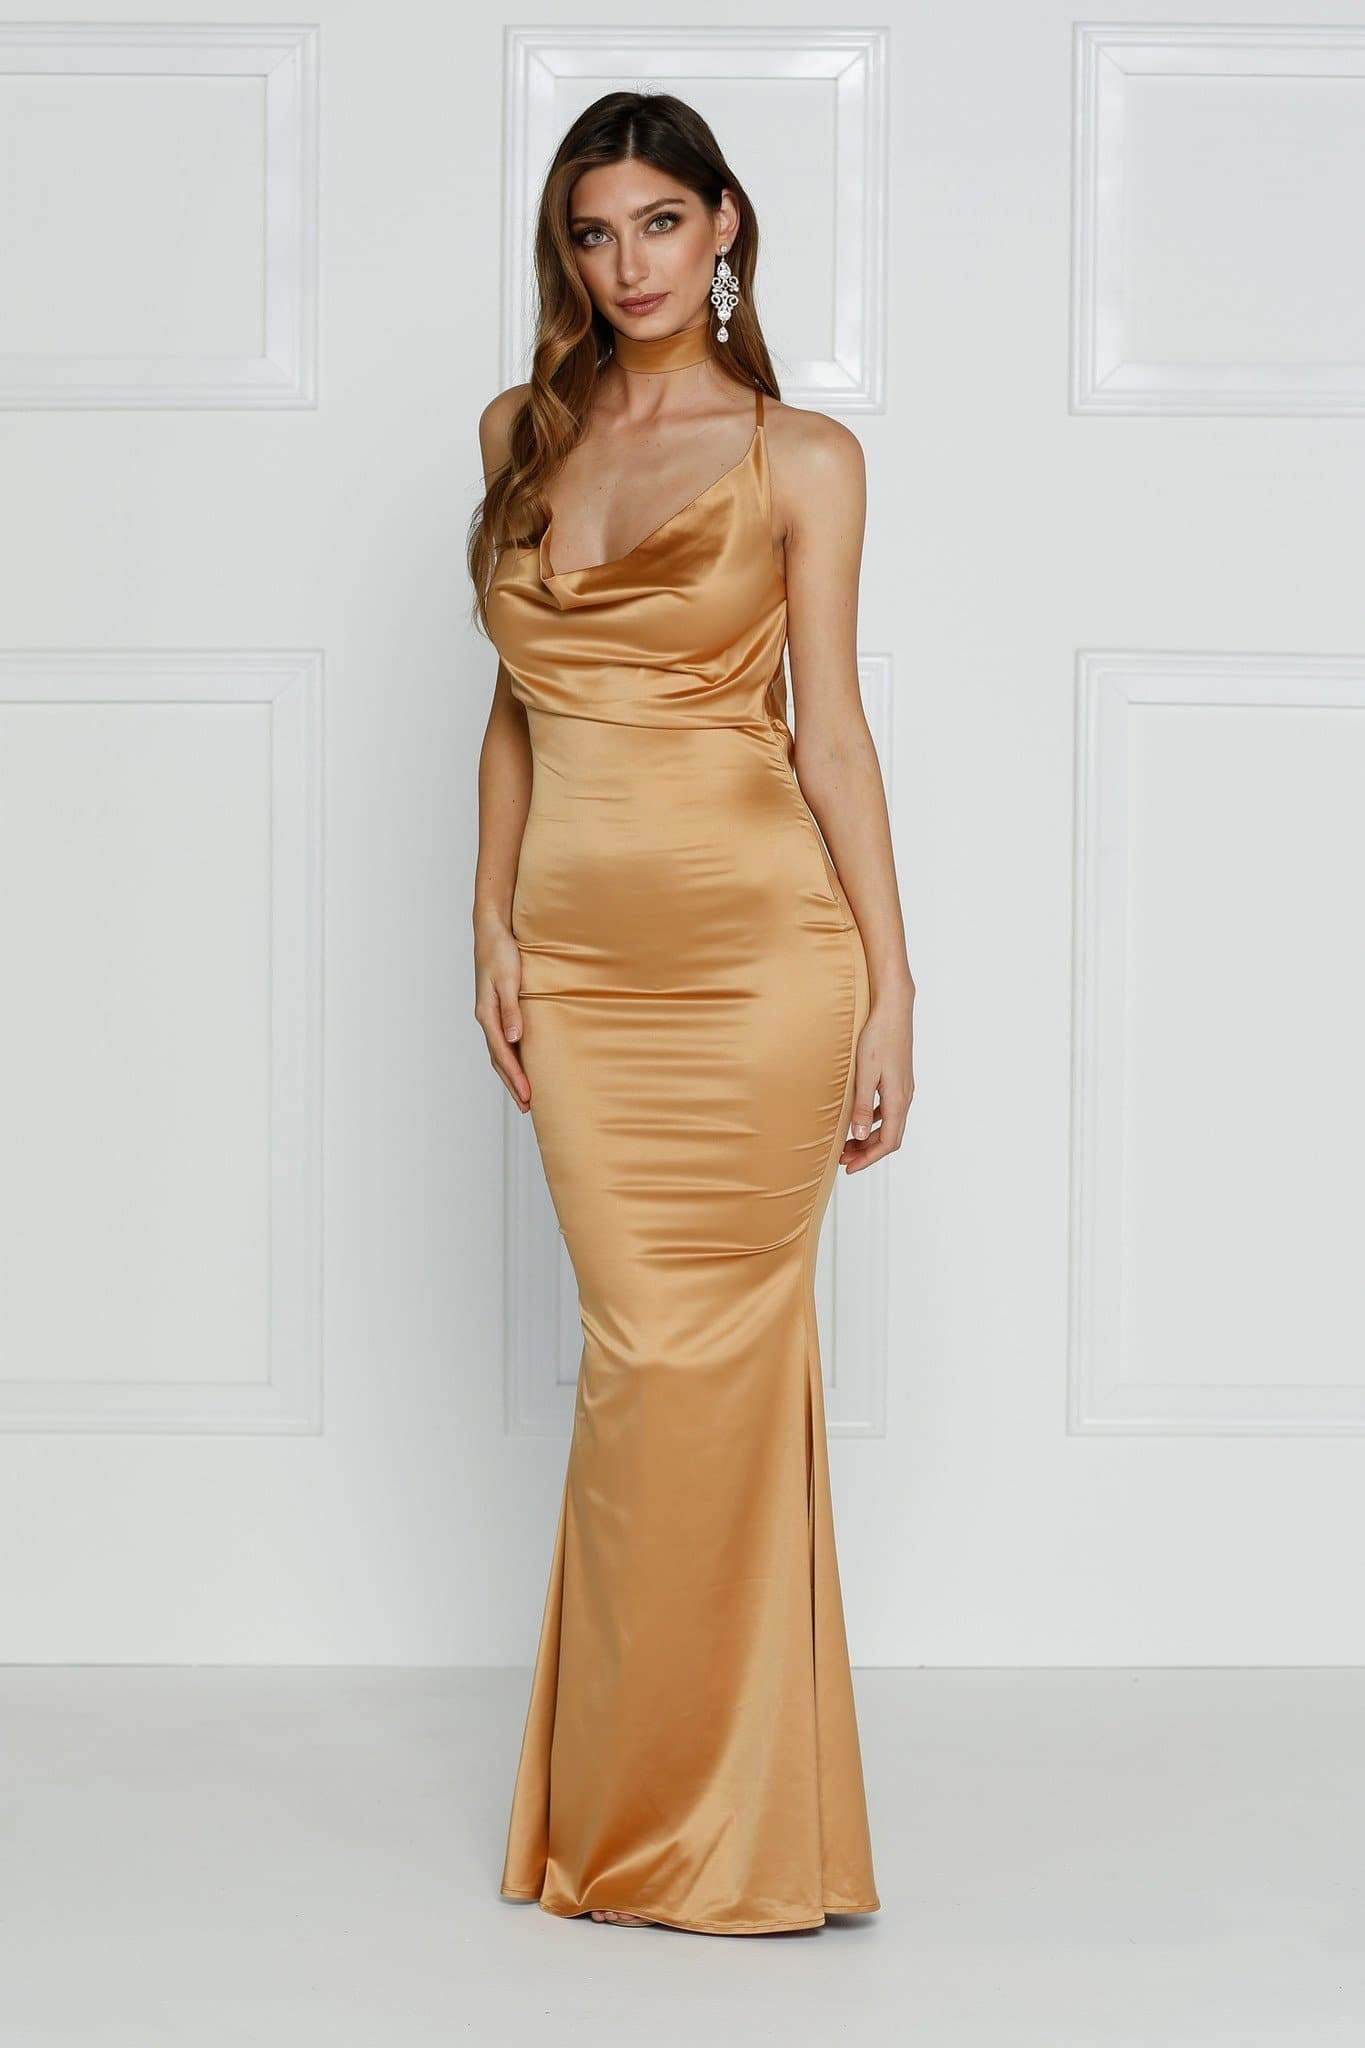 Crisantemi Gown - Gold Satin Cowl Neck Low Back Mermaid Dress